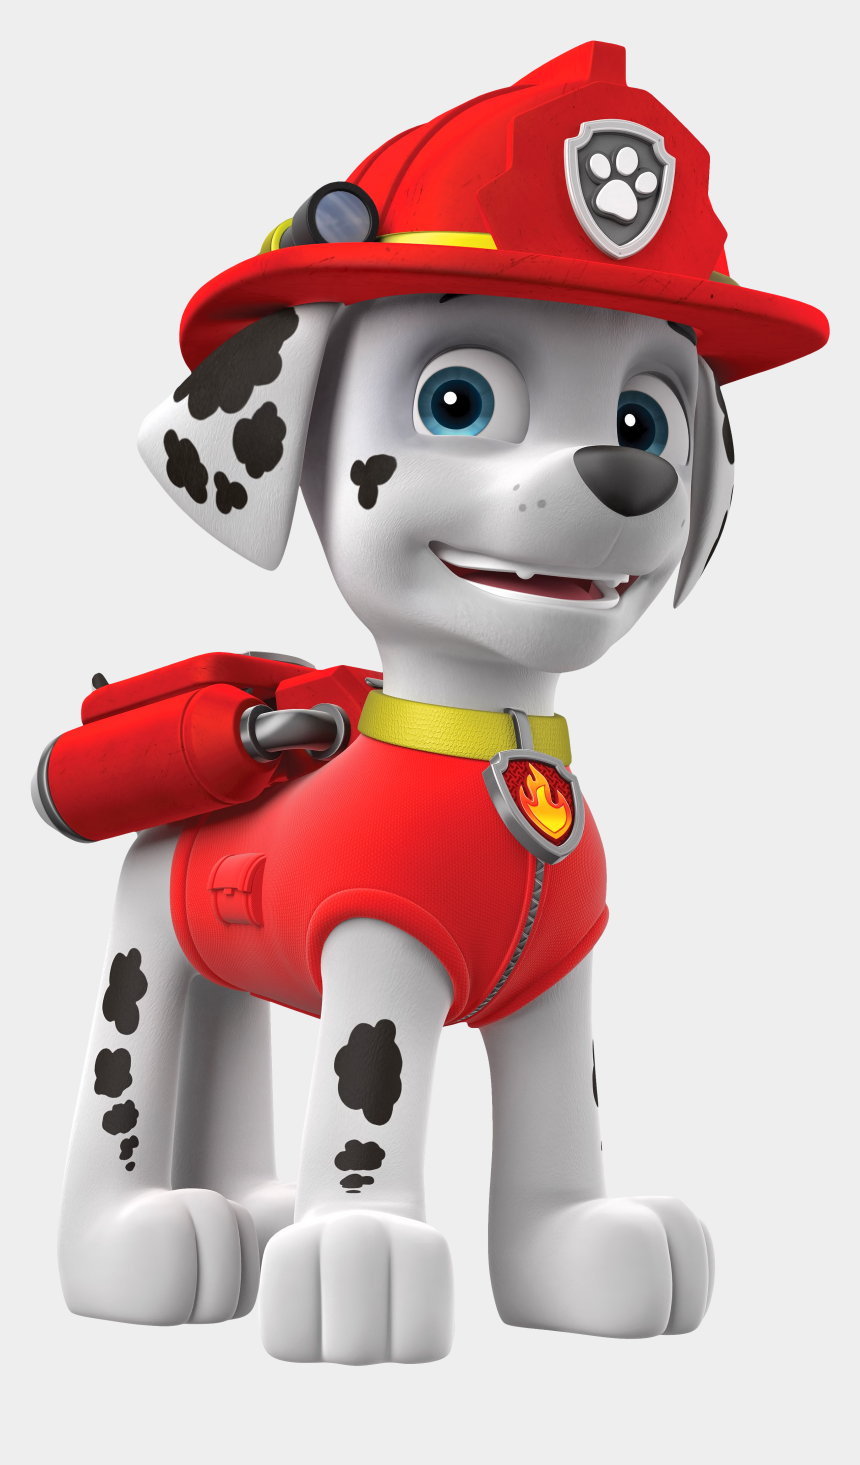 snowmobile clipart, Cartoons - Paw Patrol Marshall Cartoon Image Gallery Yopriceville - Marshall Paw Patrol Characters